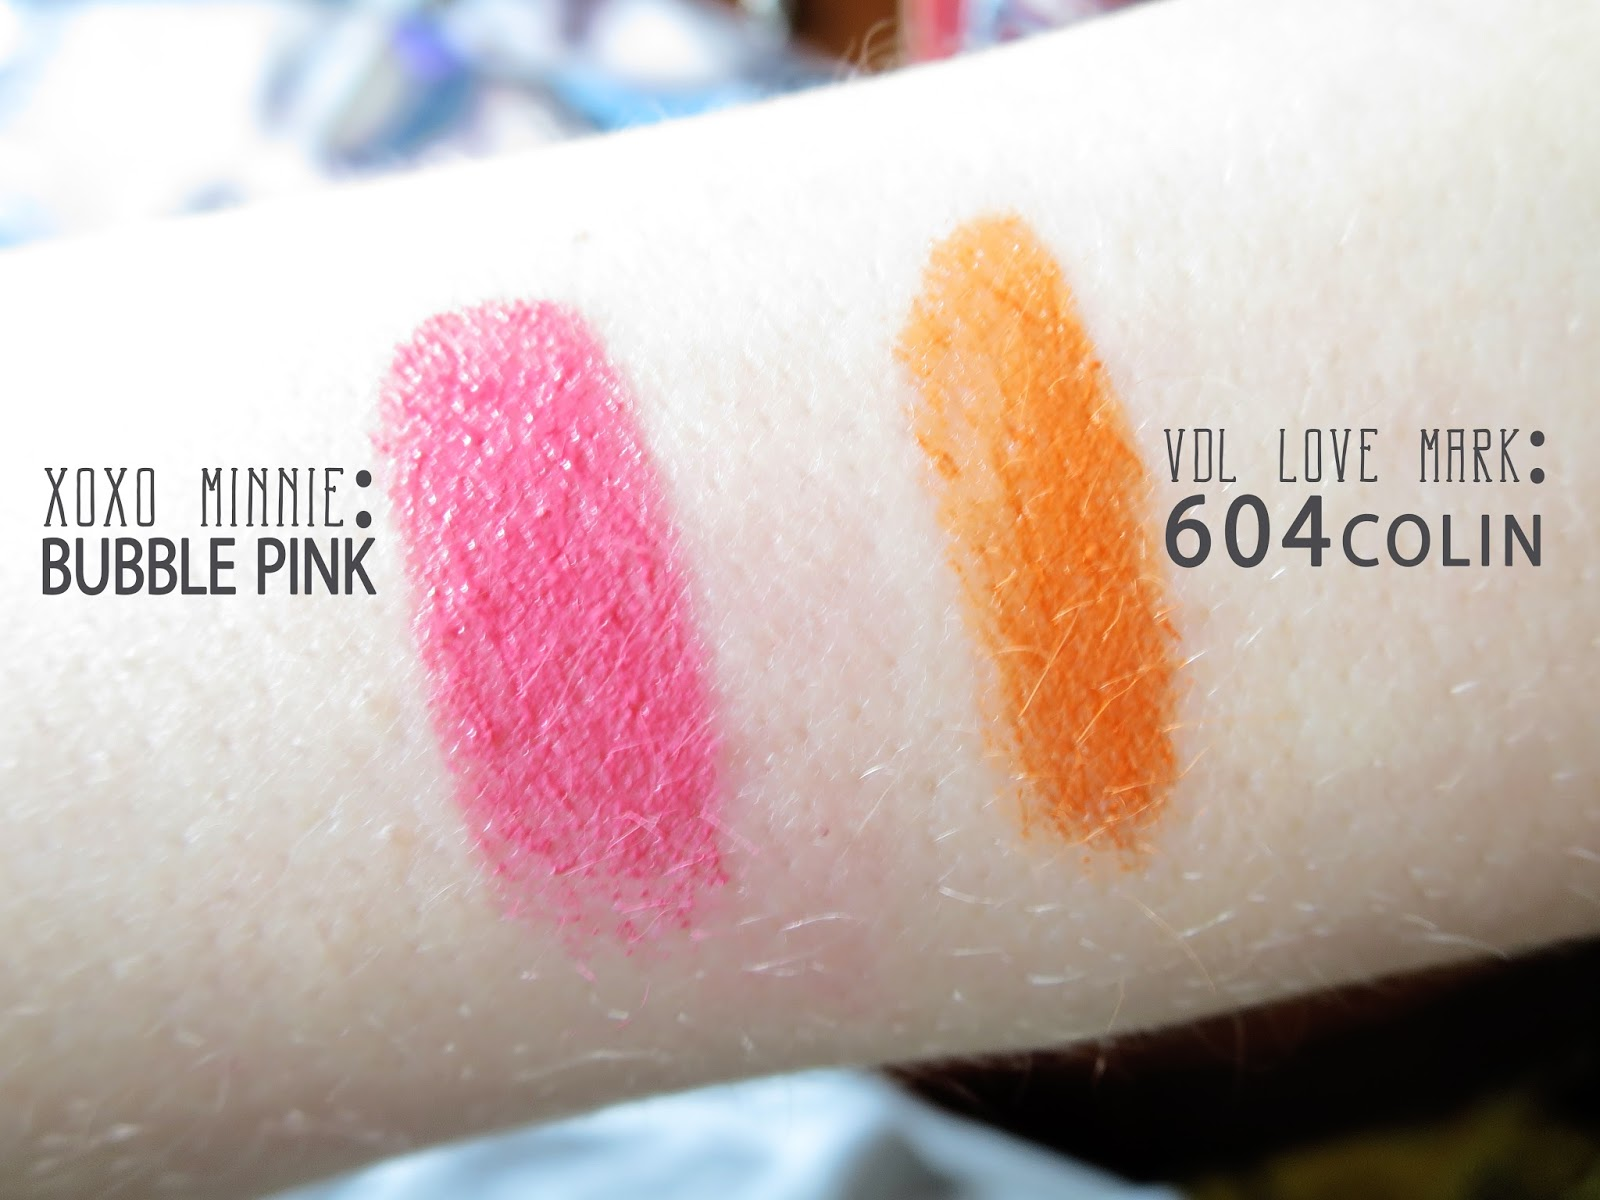 XOXO minnie VDL love mark swatches